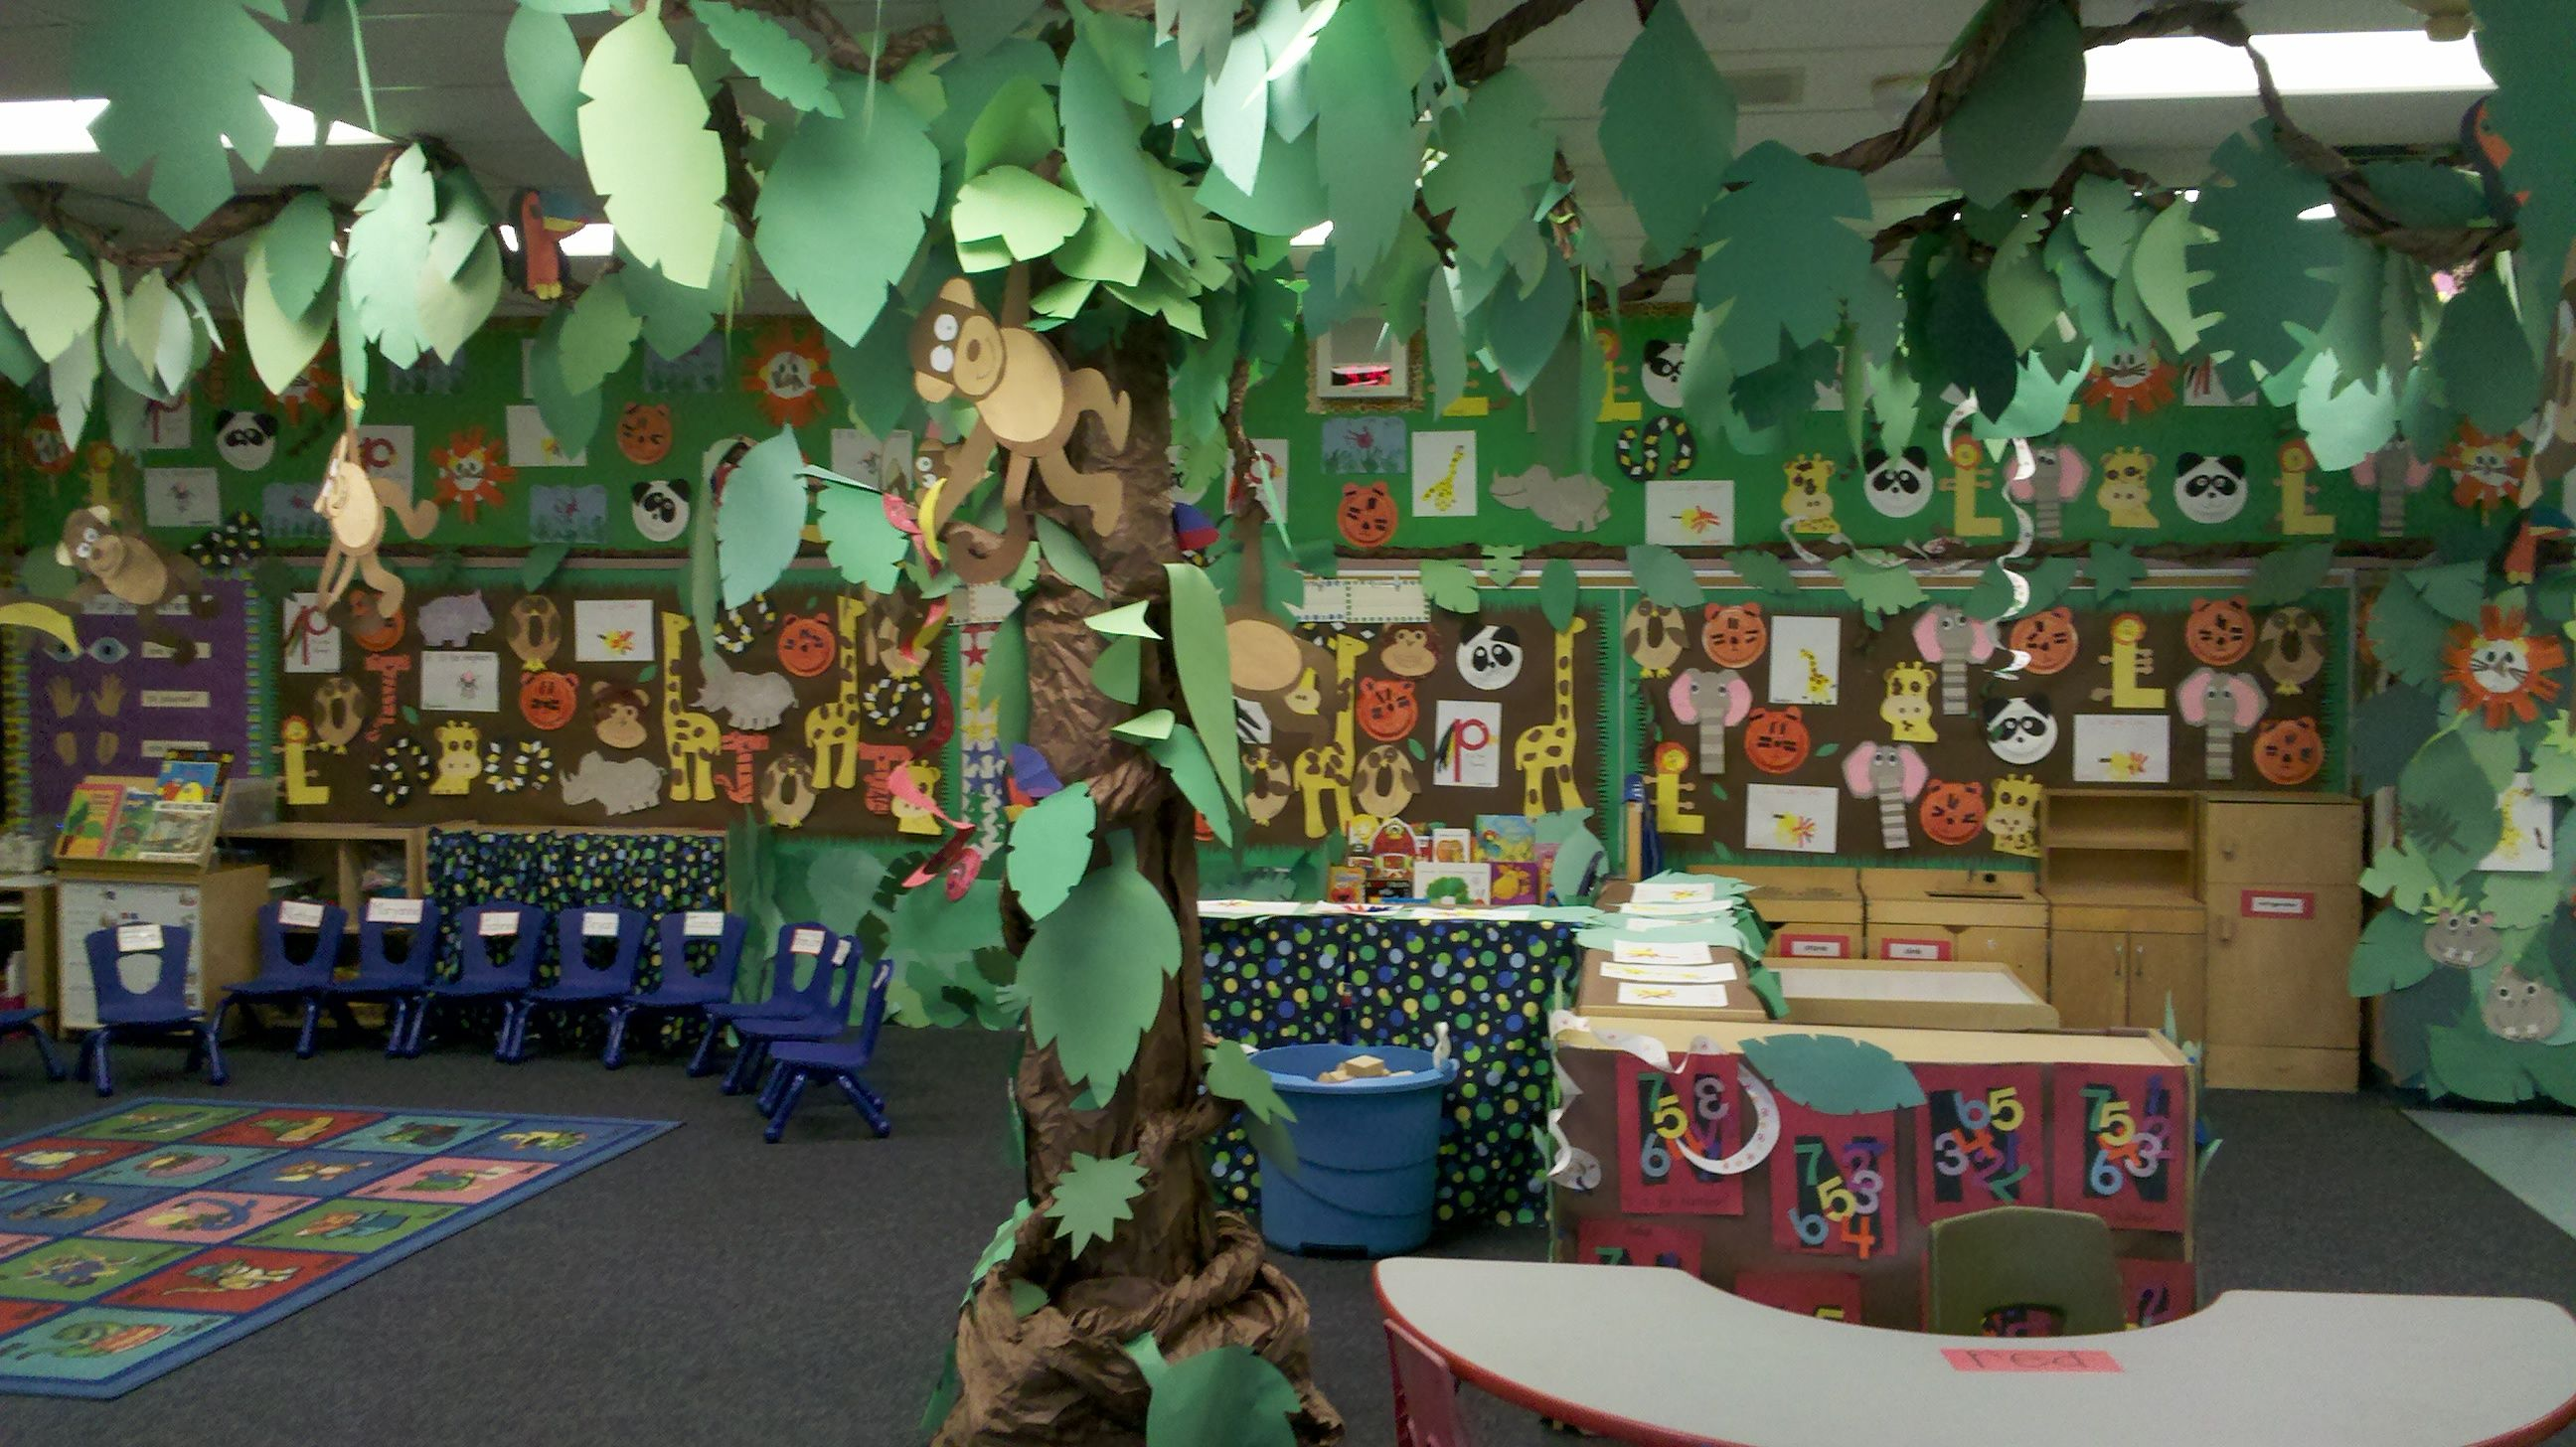 Classroom Decoration Jungle Theme ~ Classroom decoration jungle theme day camp